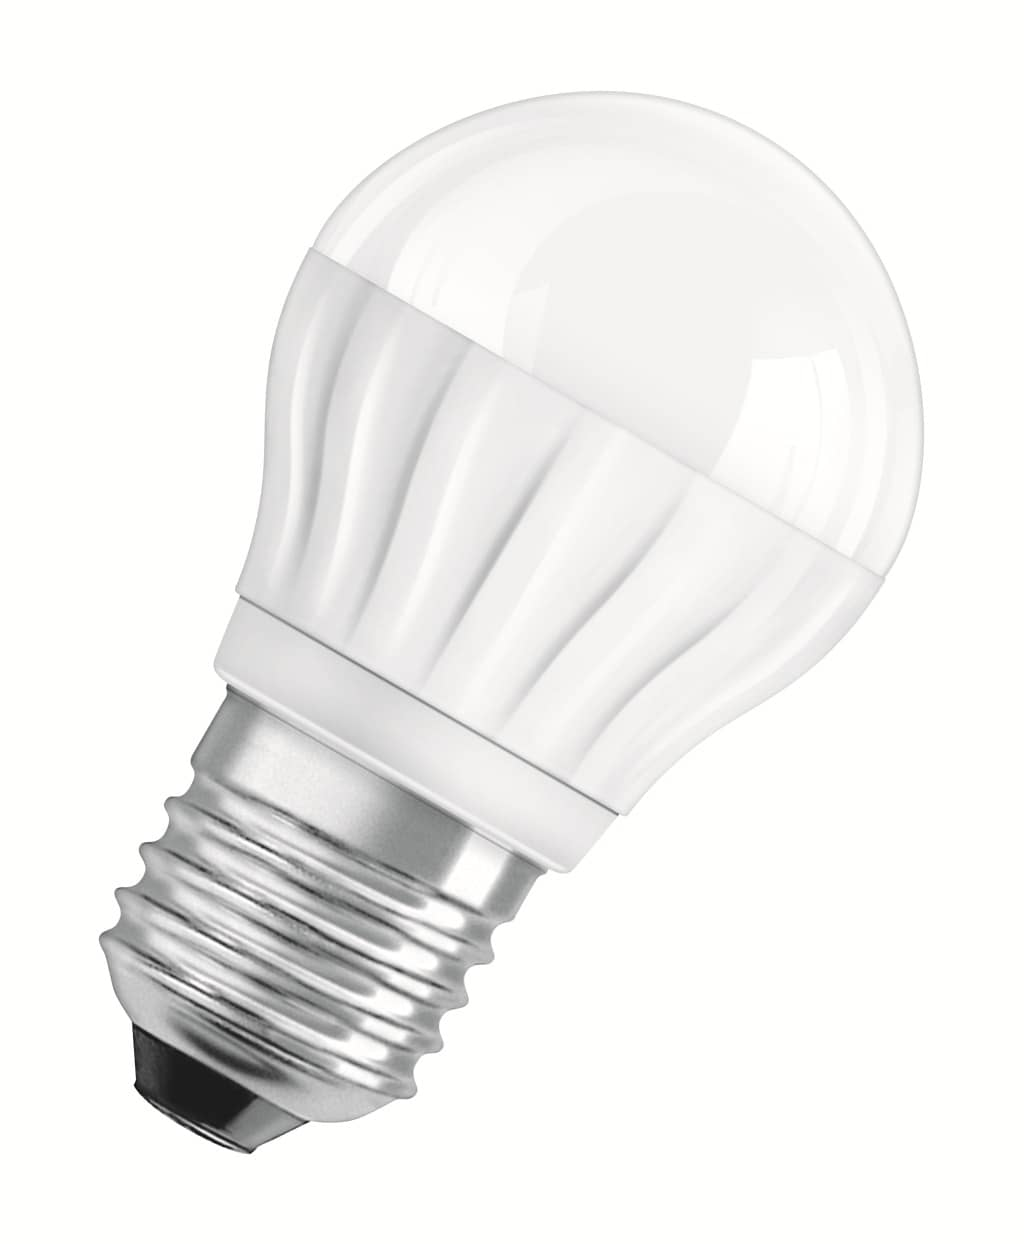 osram e27 led lampe superstar classic p advanced 4 5w. Black Bedroom Furniture Sets. Home Design Ideas